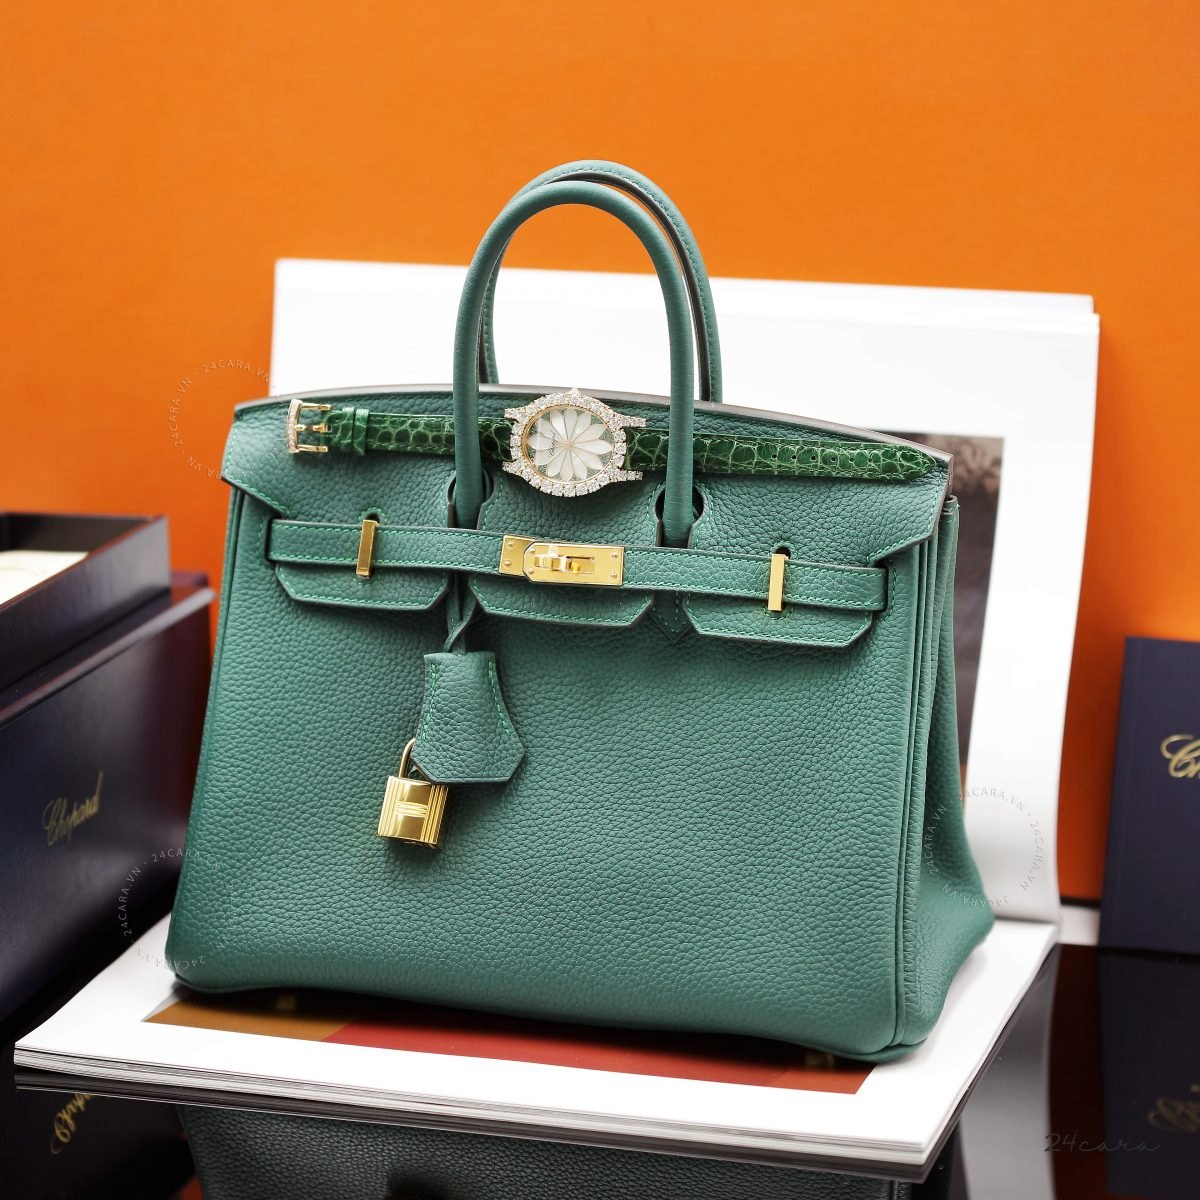 HERMES BIRKIN 30 TOGO MALACHITE LEATHER IN GOLD HARDWARE